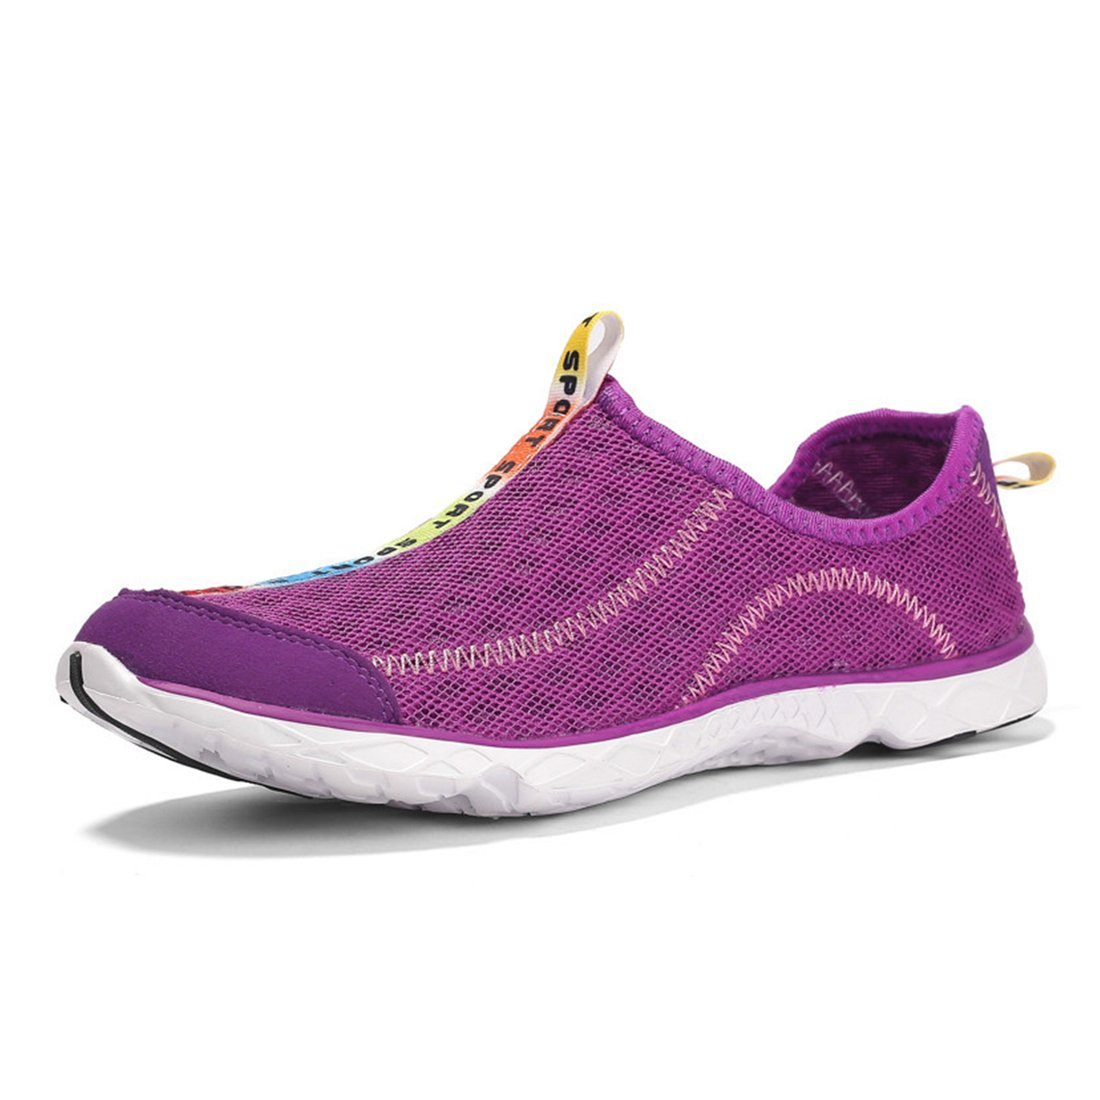 LOVEAP Women's and Men's Mesh Quick Drying Slip on Outdoor Water Shoes B07CT8SFGW men-11 US|Purple